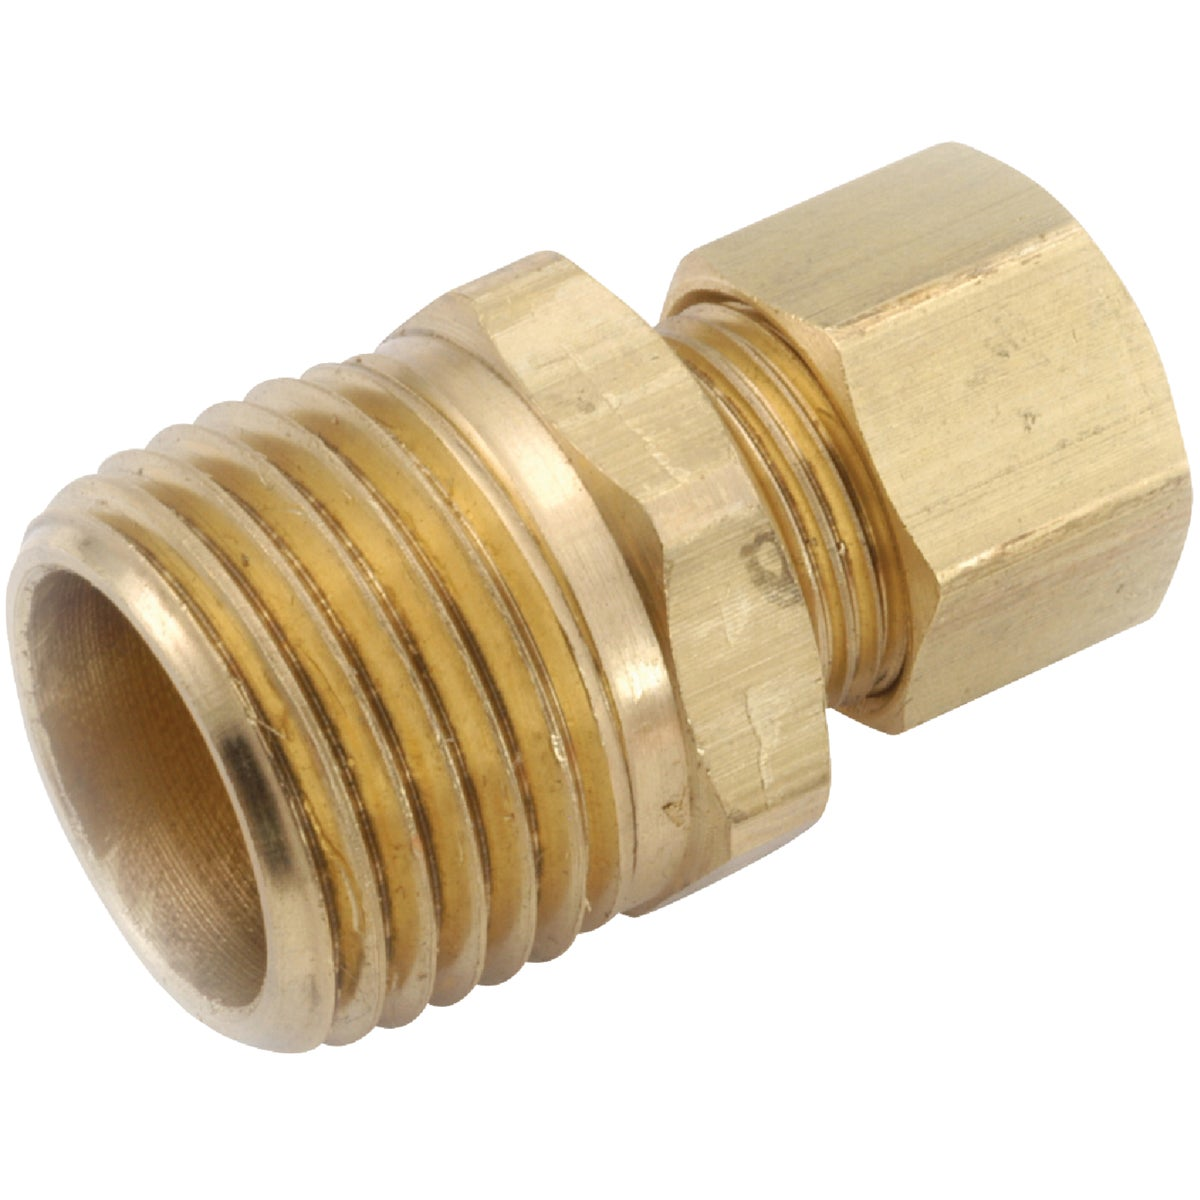 Anderson Metals Corp Inc 1/2X3/8 MALE CONNECTOR 750068-0806